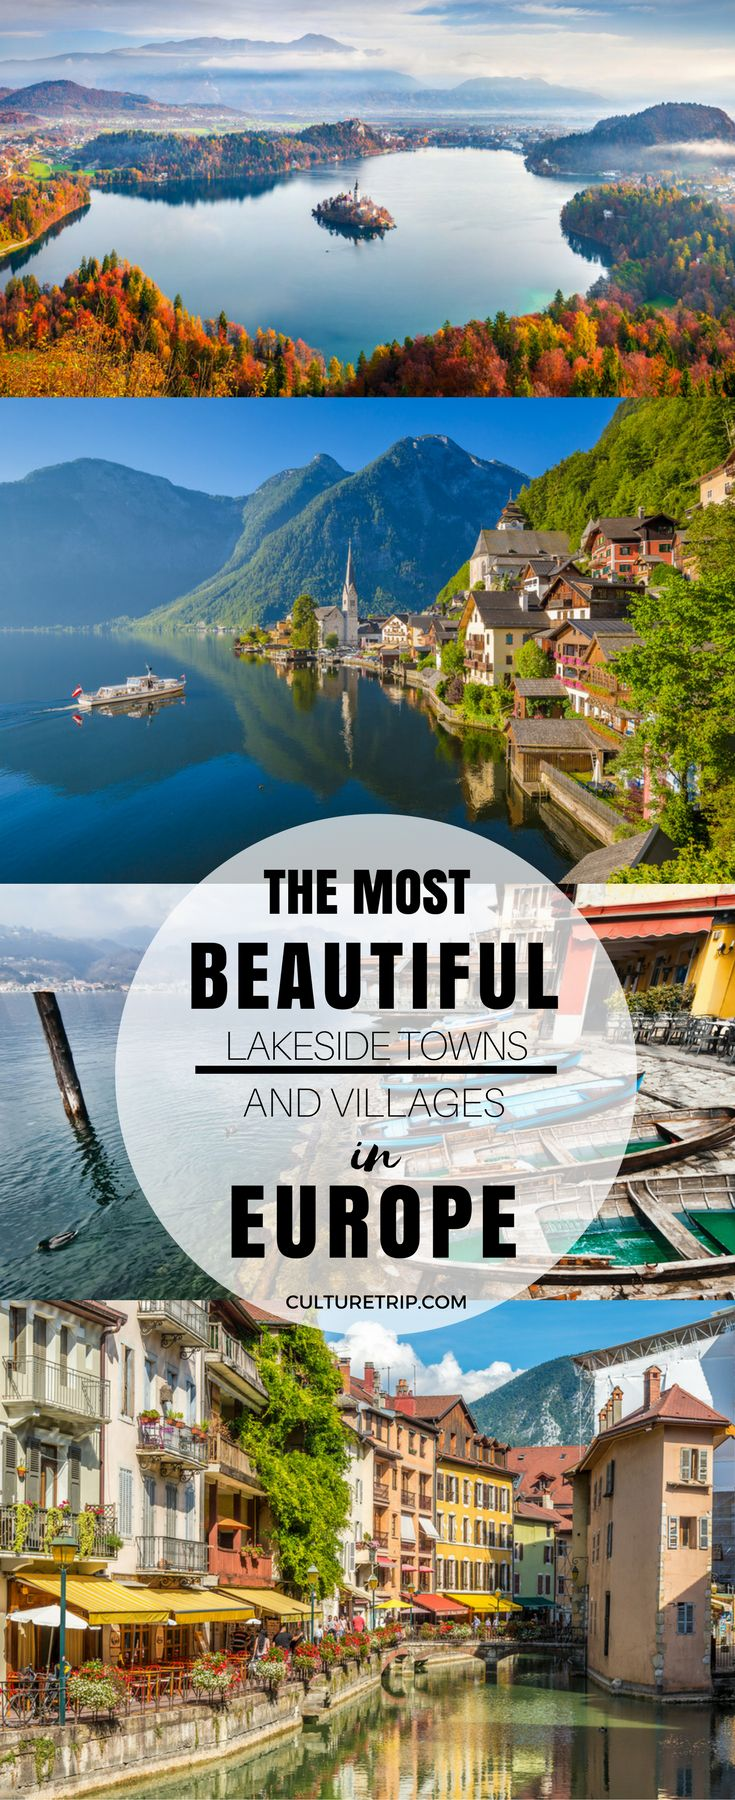 The 15 Most Beautiful Lakeside Towns and Villages in Europe|Pinterest: theculturetrip